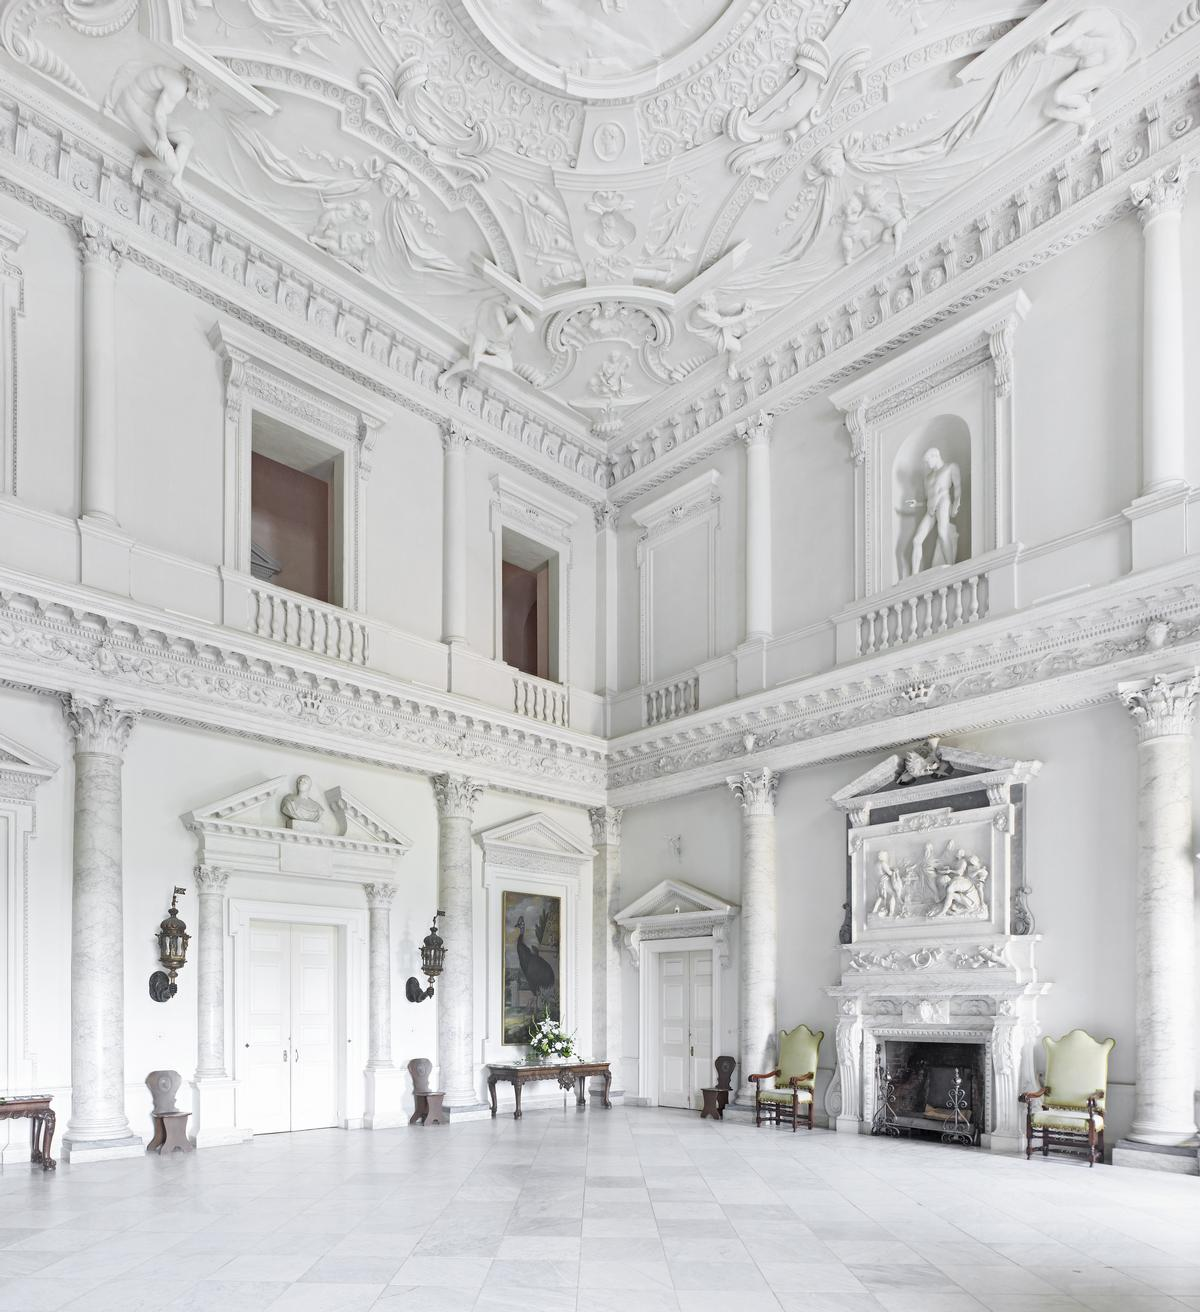 Clandon Park was designed by Venetian architect Giacomo Leoni in the early 18th century for a local baron, and was celebrated, pre-fire, for its Marble Hall / Anthony Parkinson